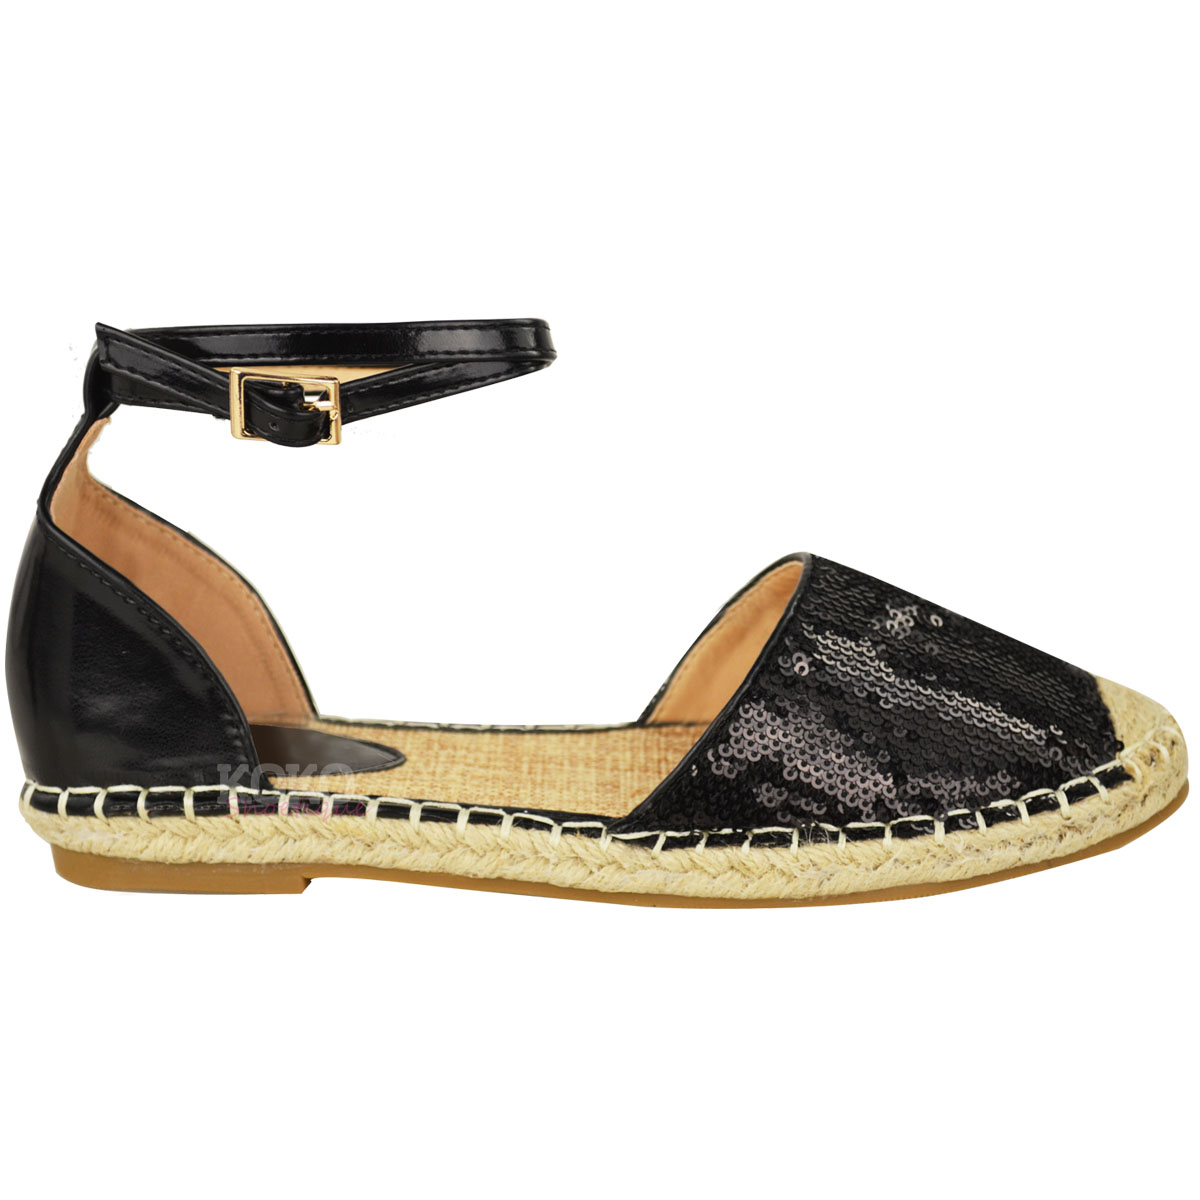 Sandals shoes holidays - New Womens Ladies Summer Espadrilles Sandals Flat Ankle